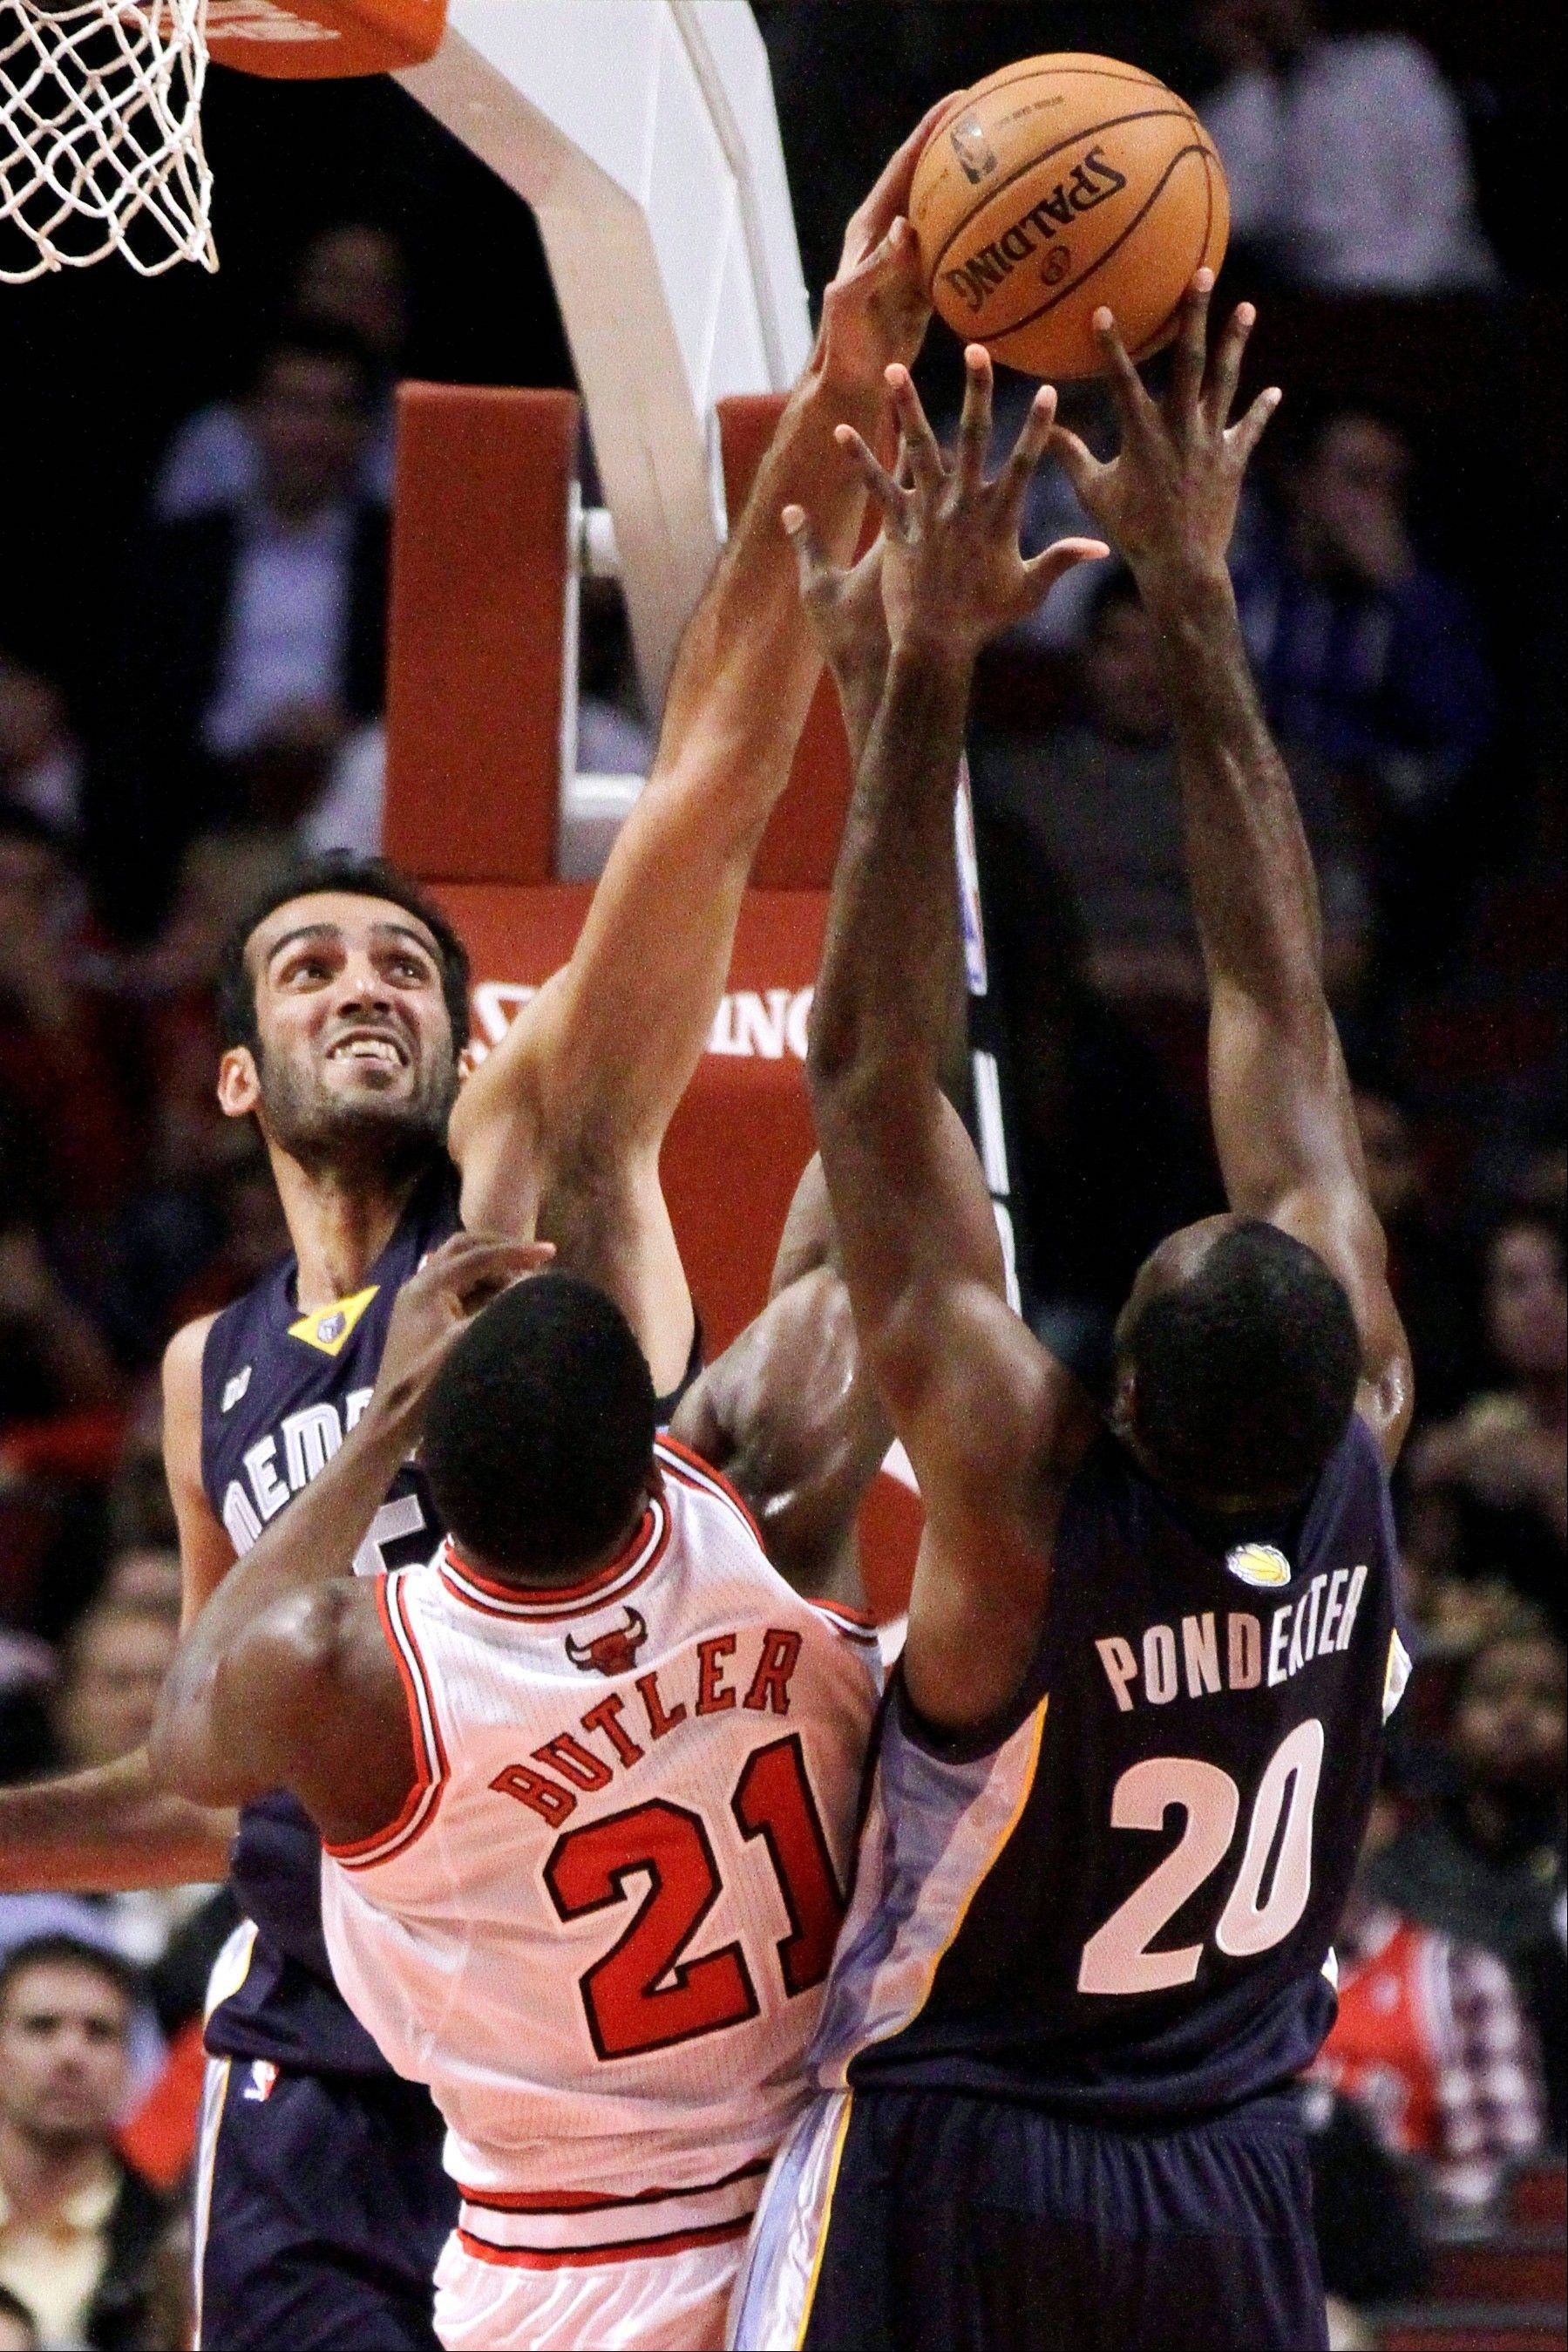 Memphis Grizzlies center Hamed Haddadi, left, blocks the shot of Chicago Bulls guard Jimmy Butler (21) as Grizzlies� Quincy Pondexter (20) defends during the first half of a preseason NBA basketball game, Tuesday, Oct. 9, 2012, in Chicago. (AP Photo/Charles Rex Arbogast)